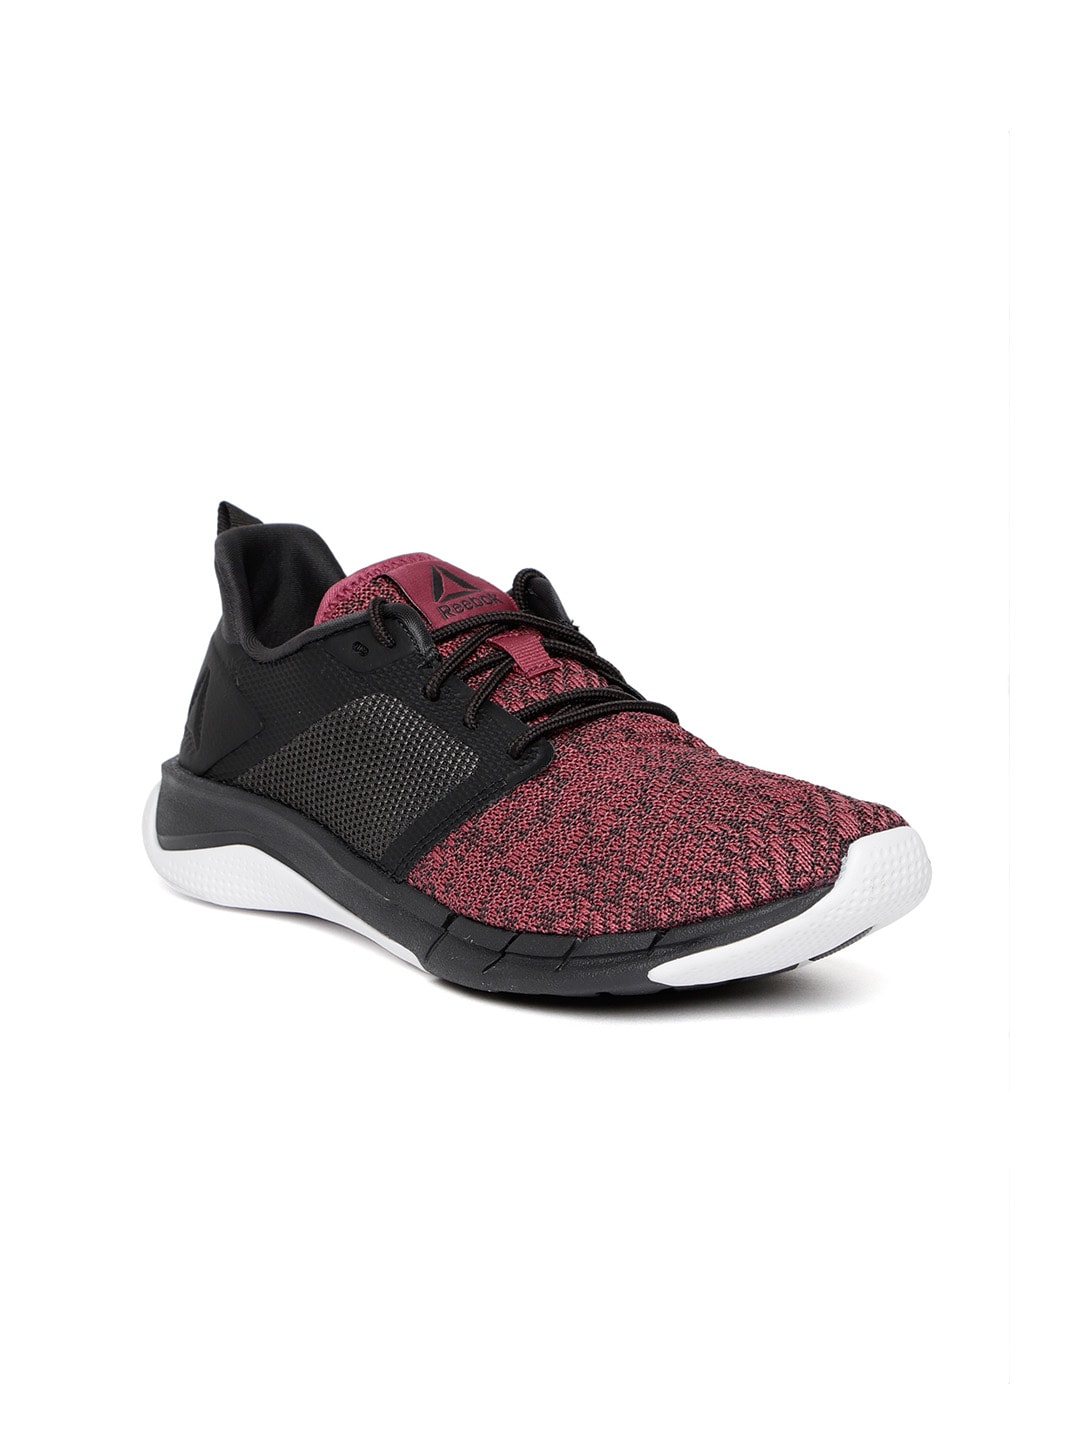 f817a3b676cab7 Reebok Sport Shoes - Buy Reebok Sport Shoes online in India